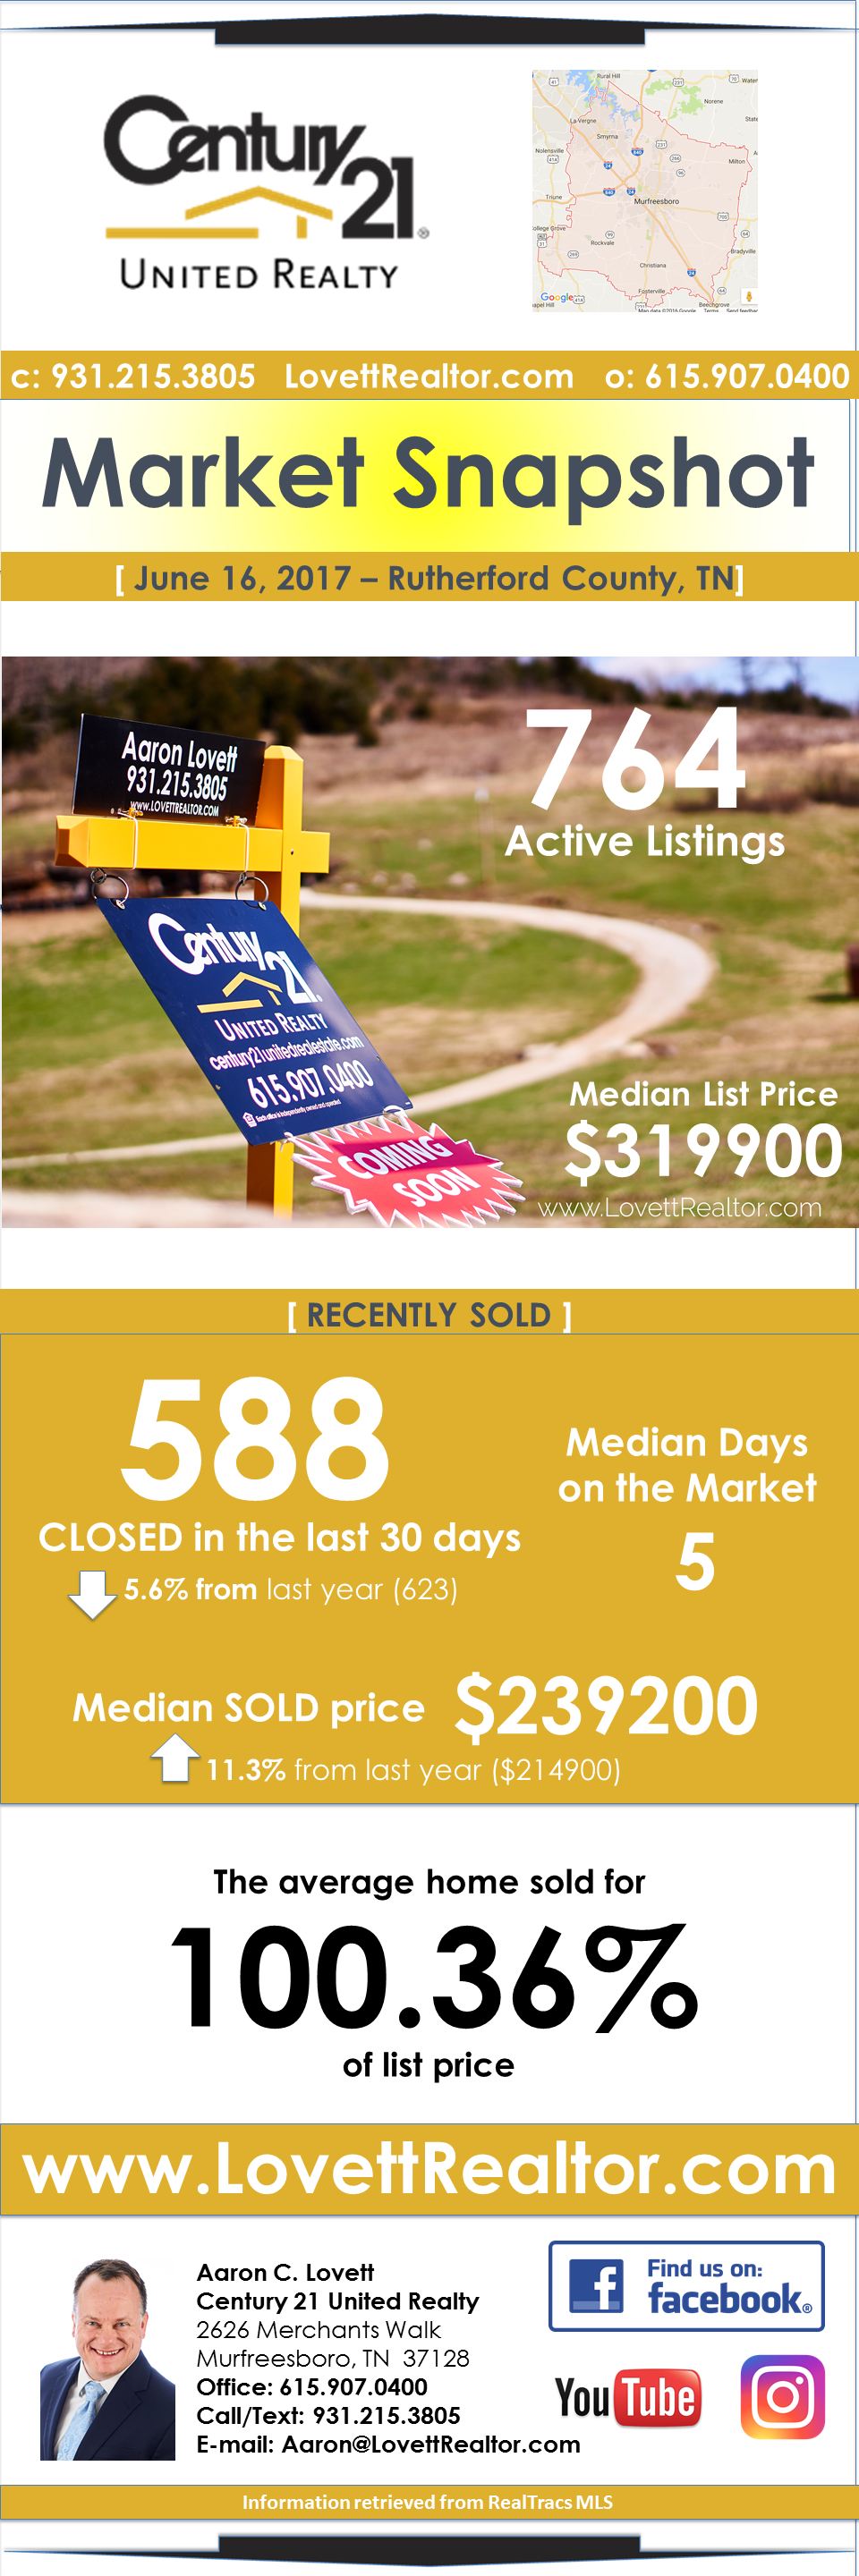 Tennessee rutherford county lascassas - Infographic Rutherford County Tn Real Estate Market Snapshot June 2017